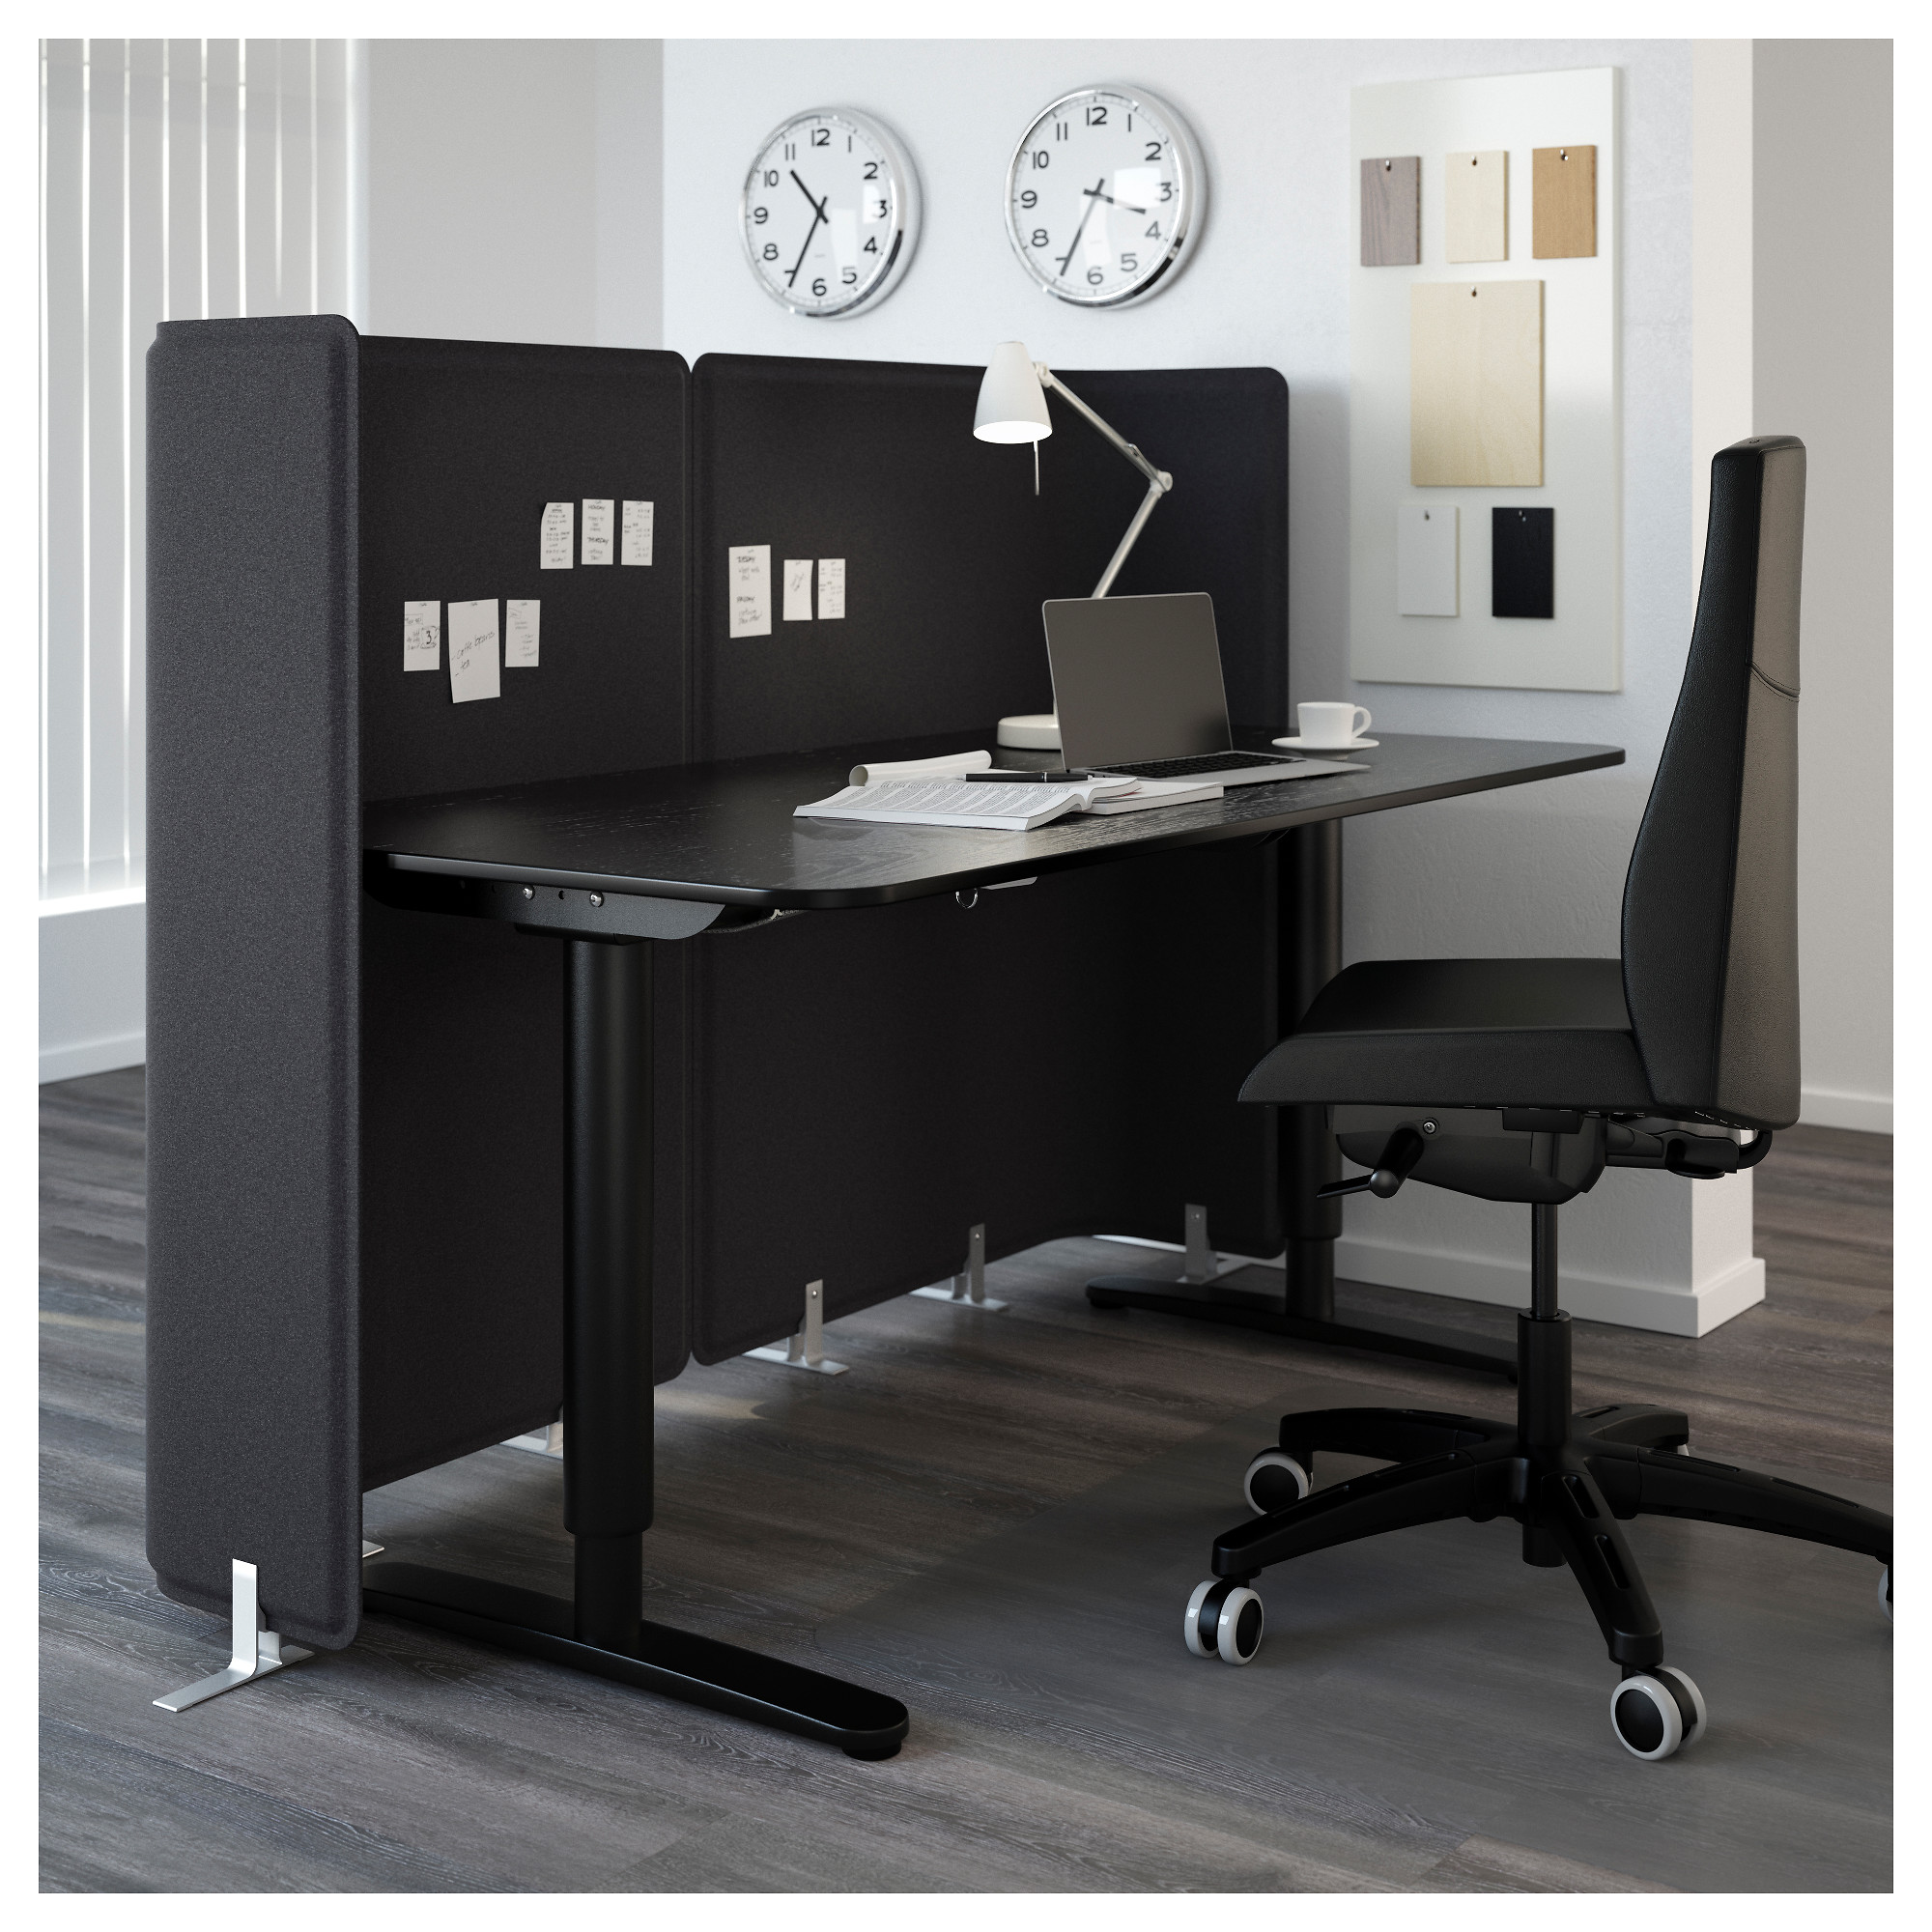 ikea office dividers. Ikea Office Dividers A